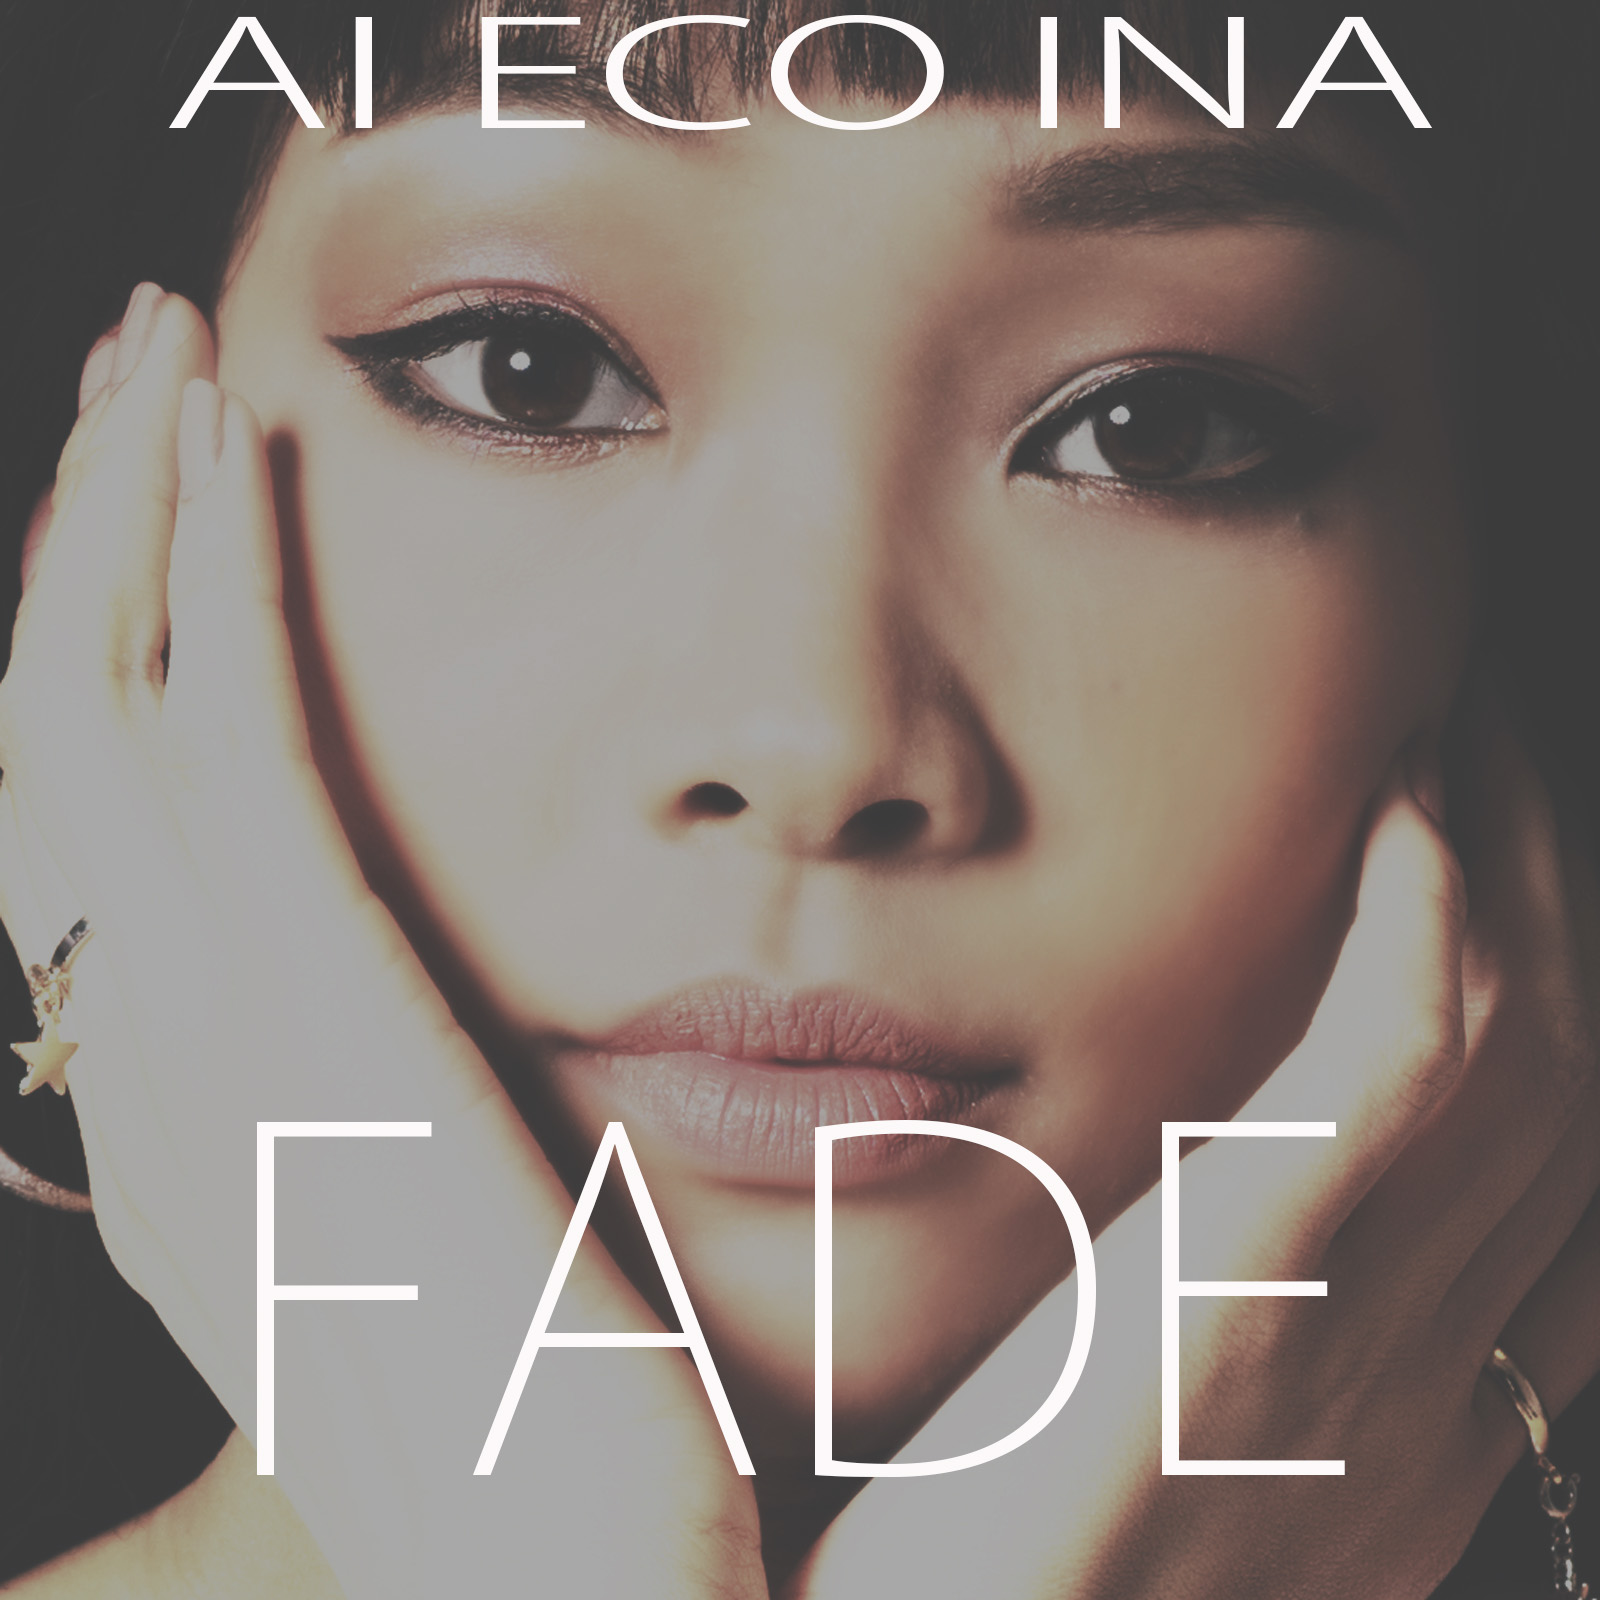 AI ECO INA / Fade - Single / 2017.03